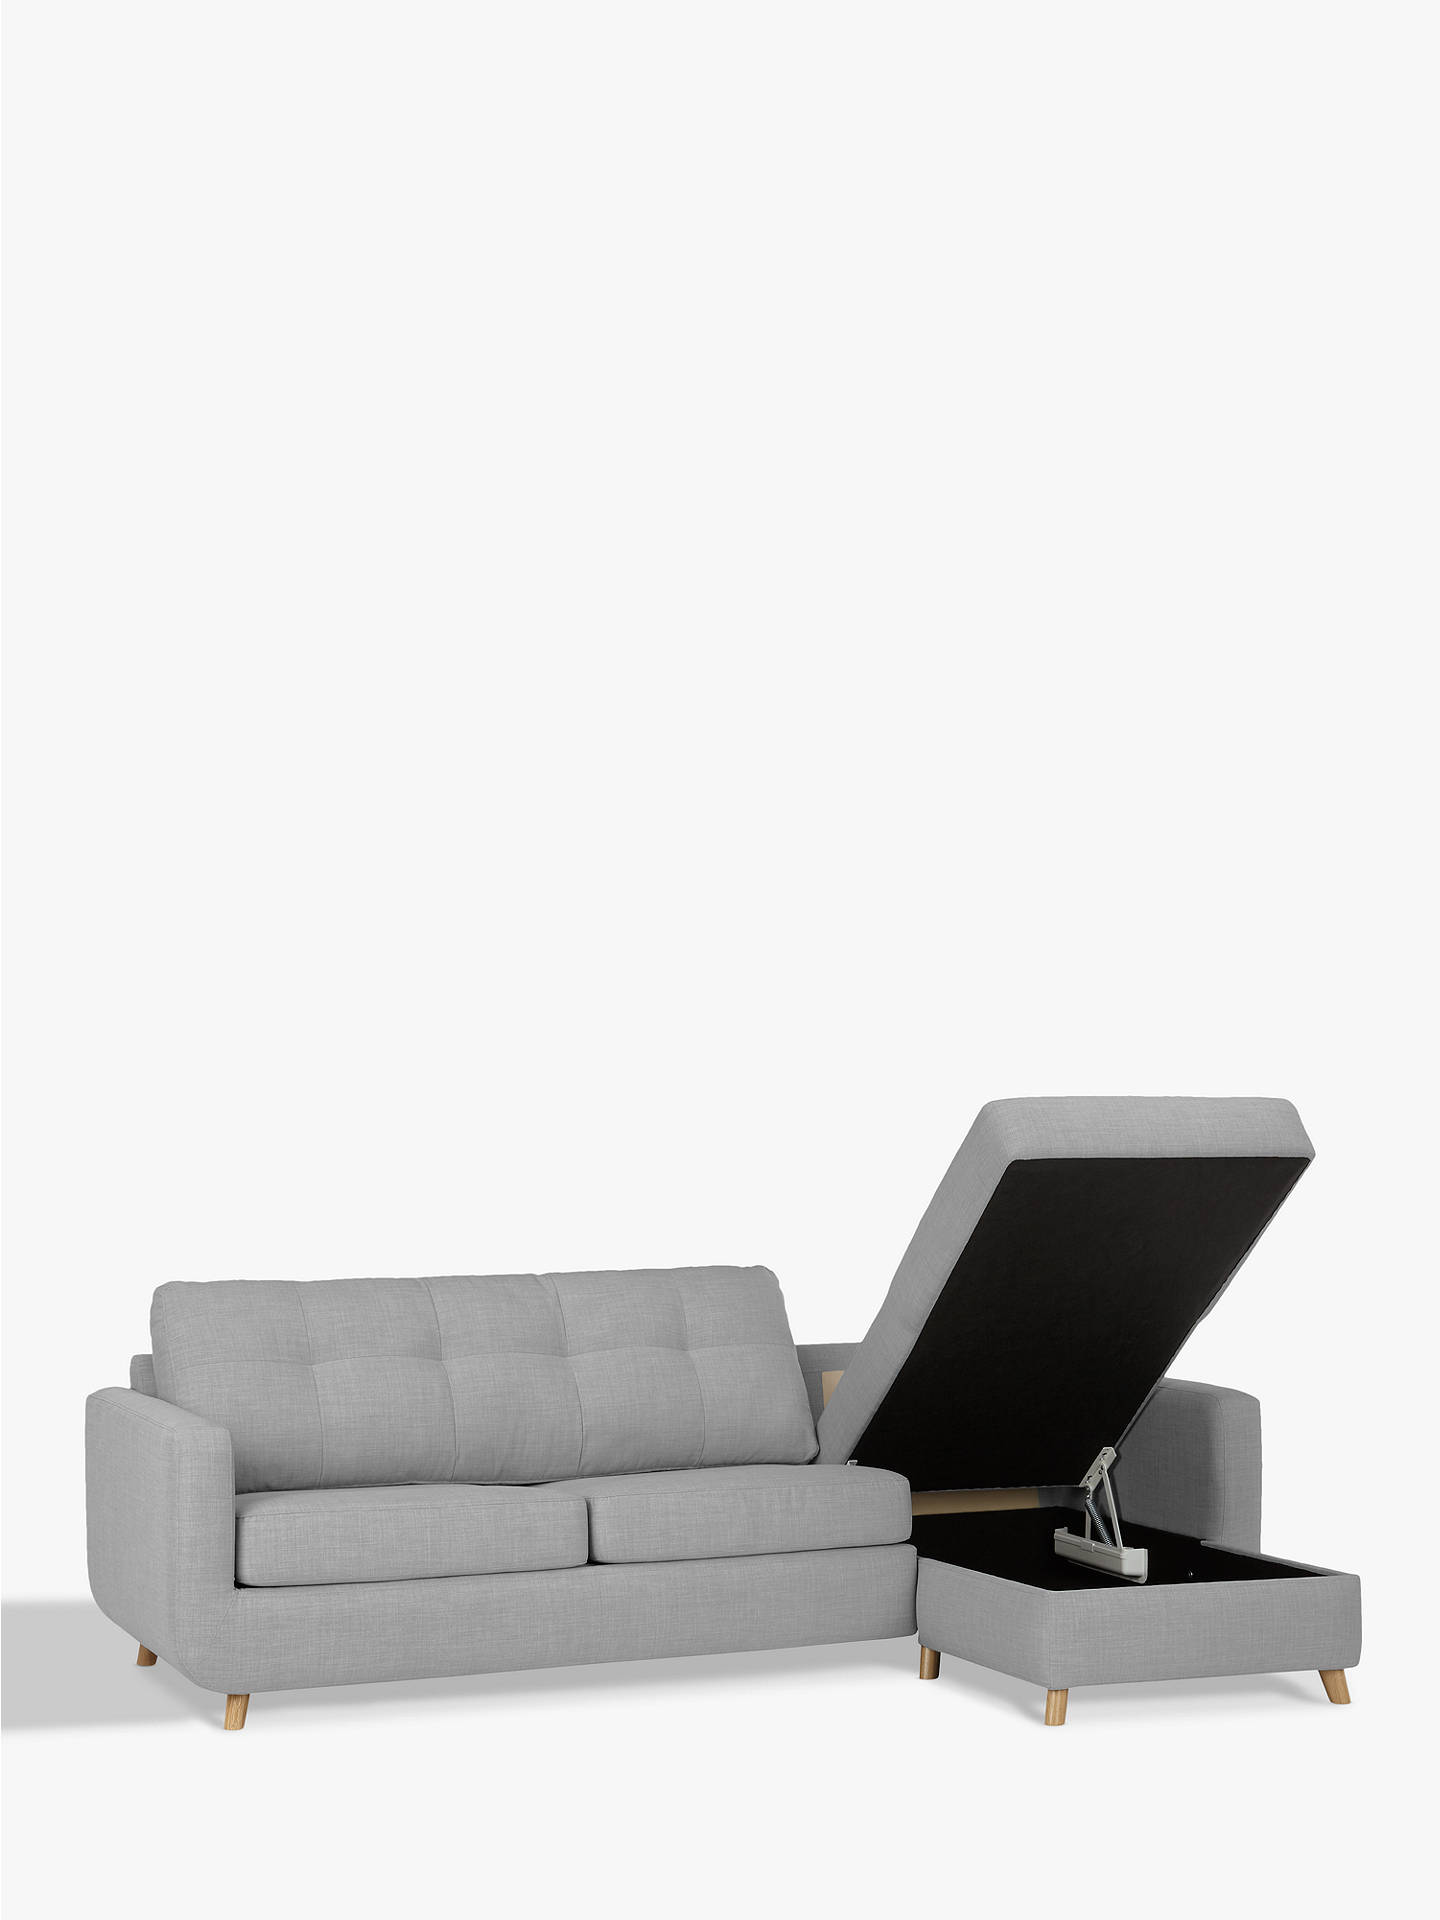 John Lewis & Partners Barbican RHF Chaise Sofa Bed with ...